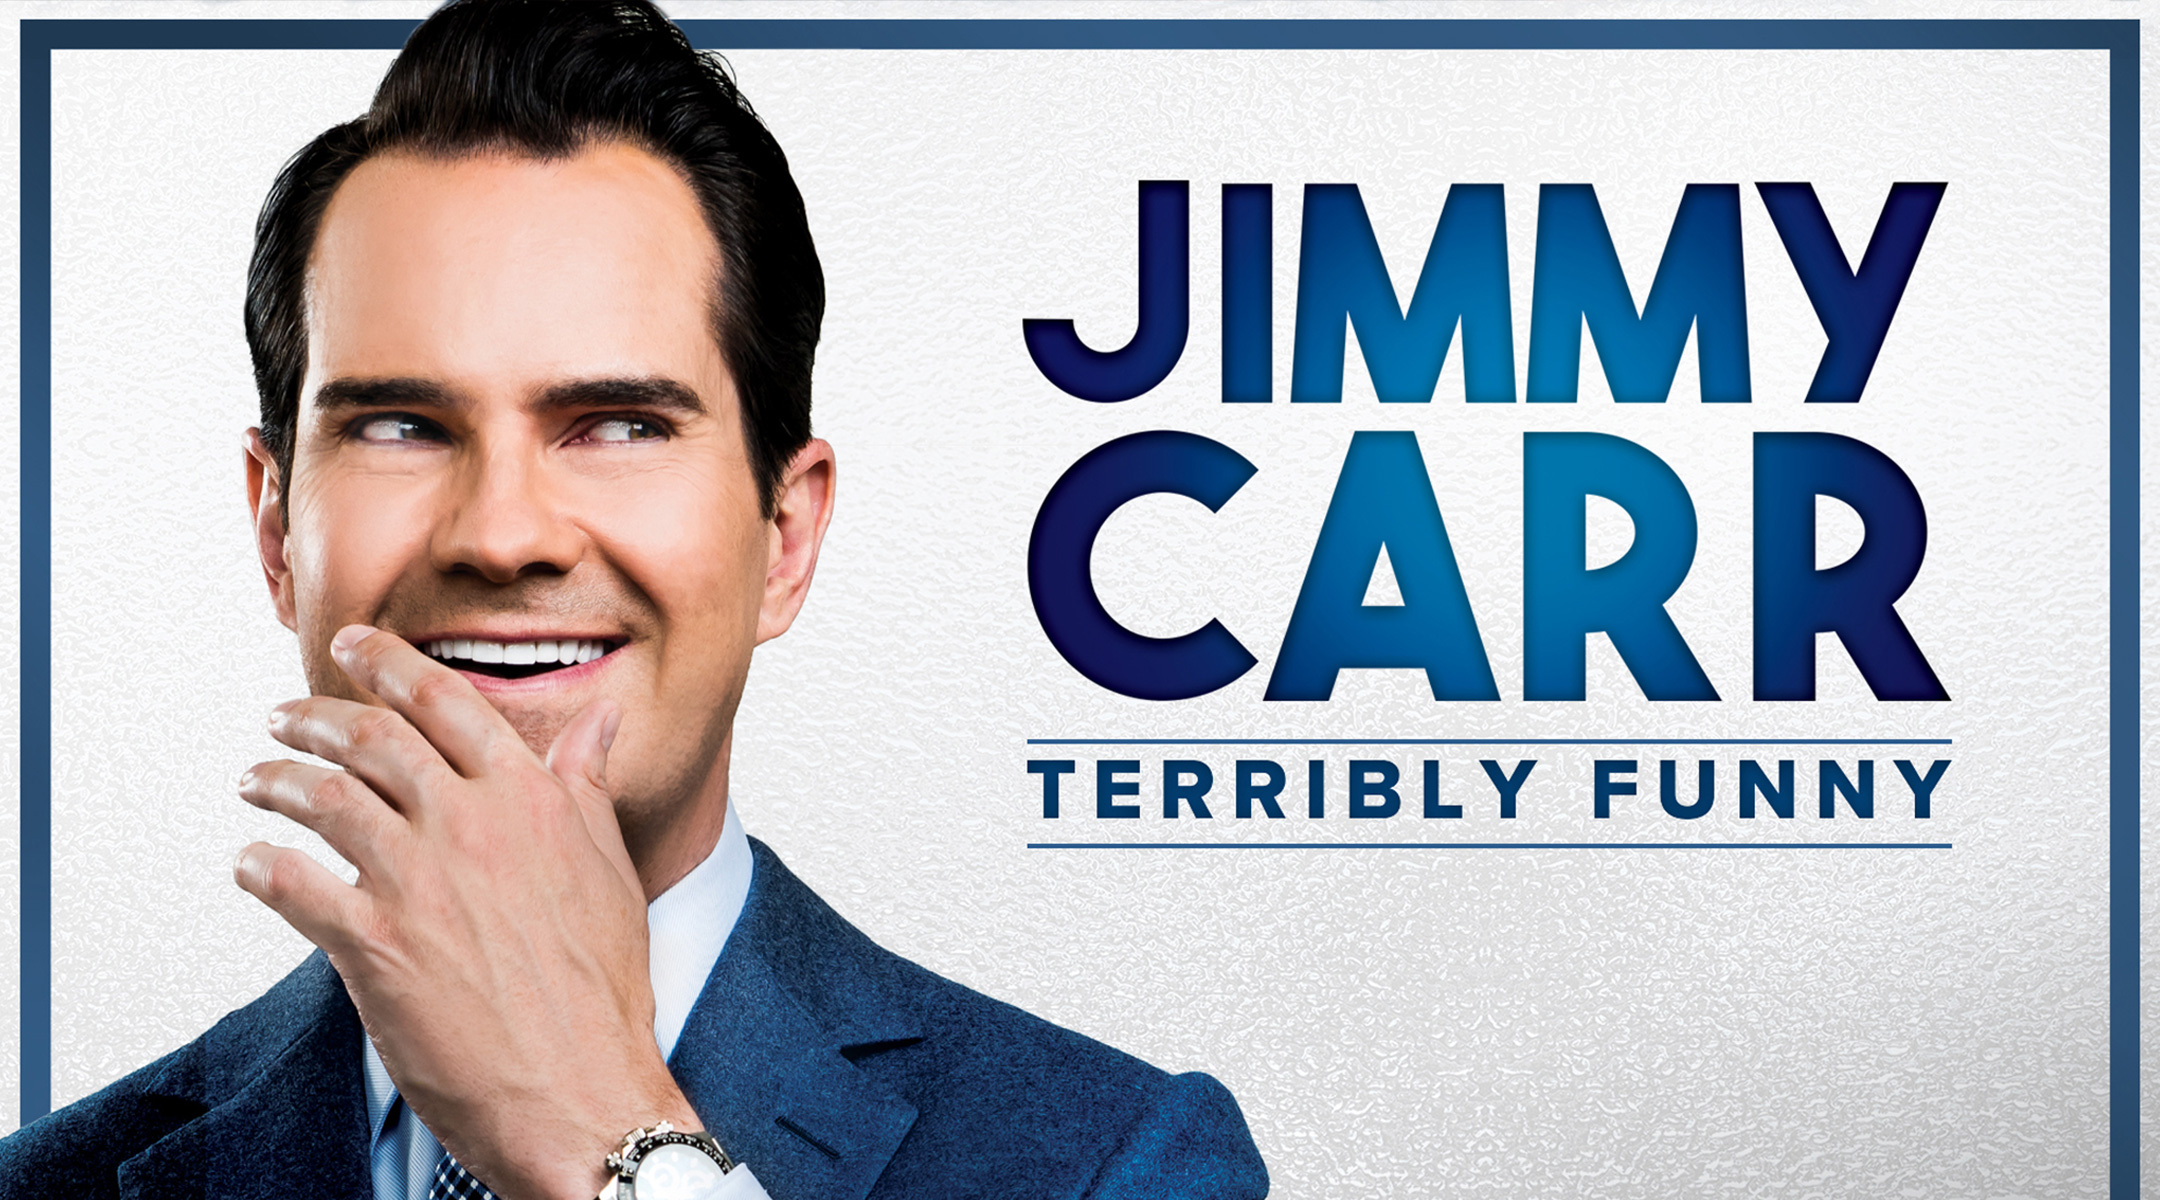 Jimmy Carr: Terribly Funny - Derry